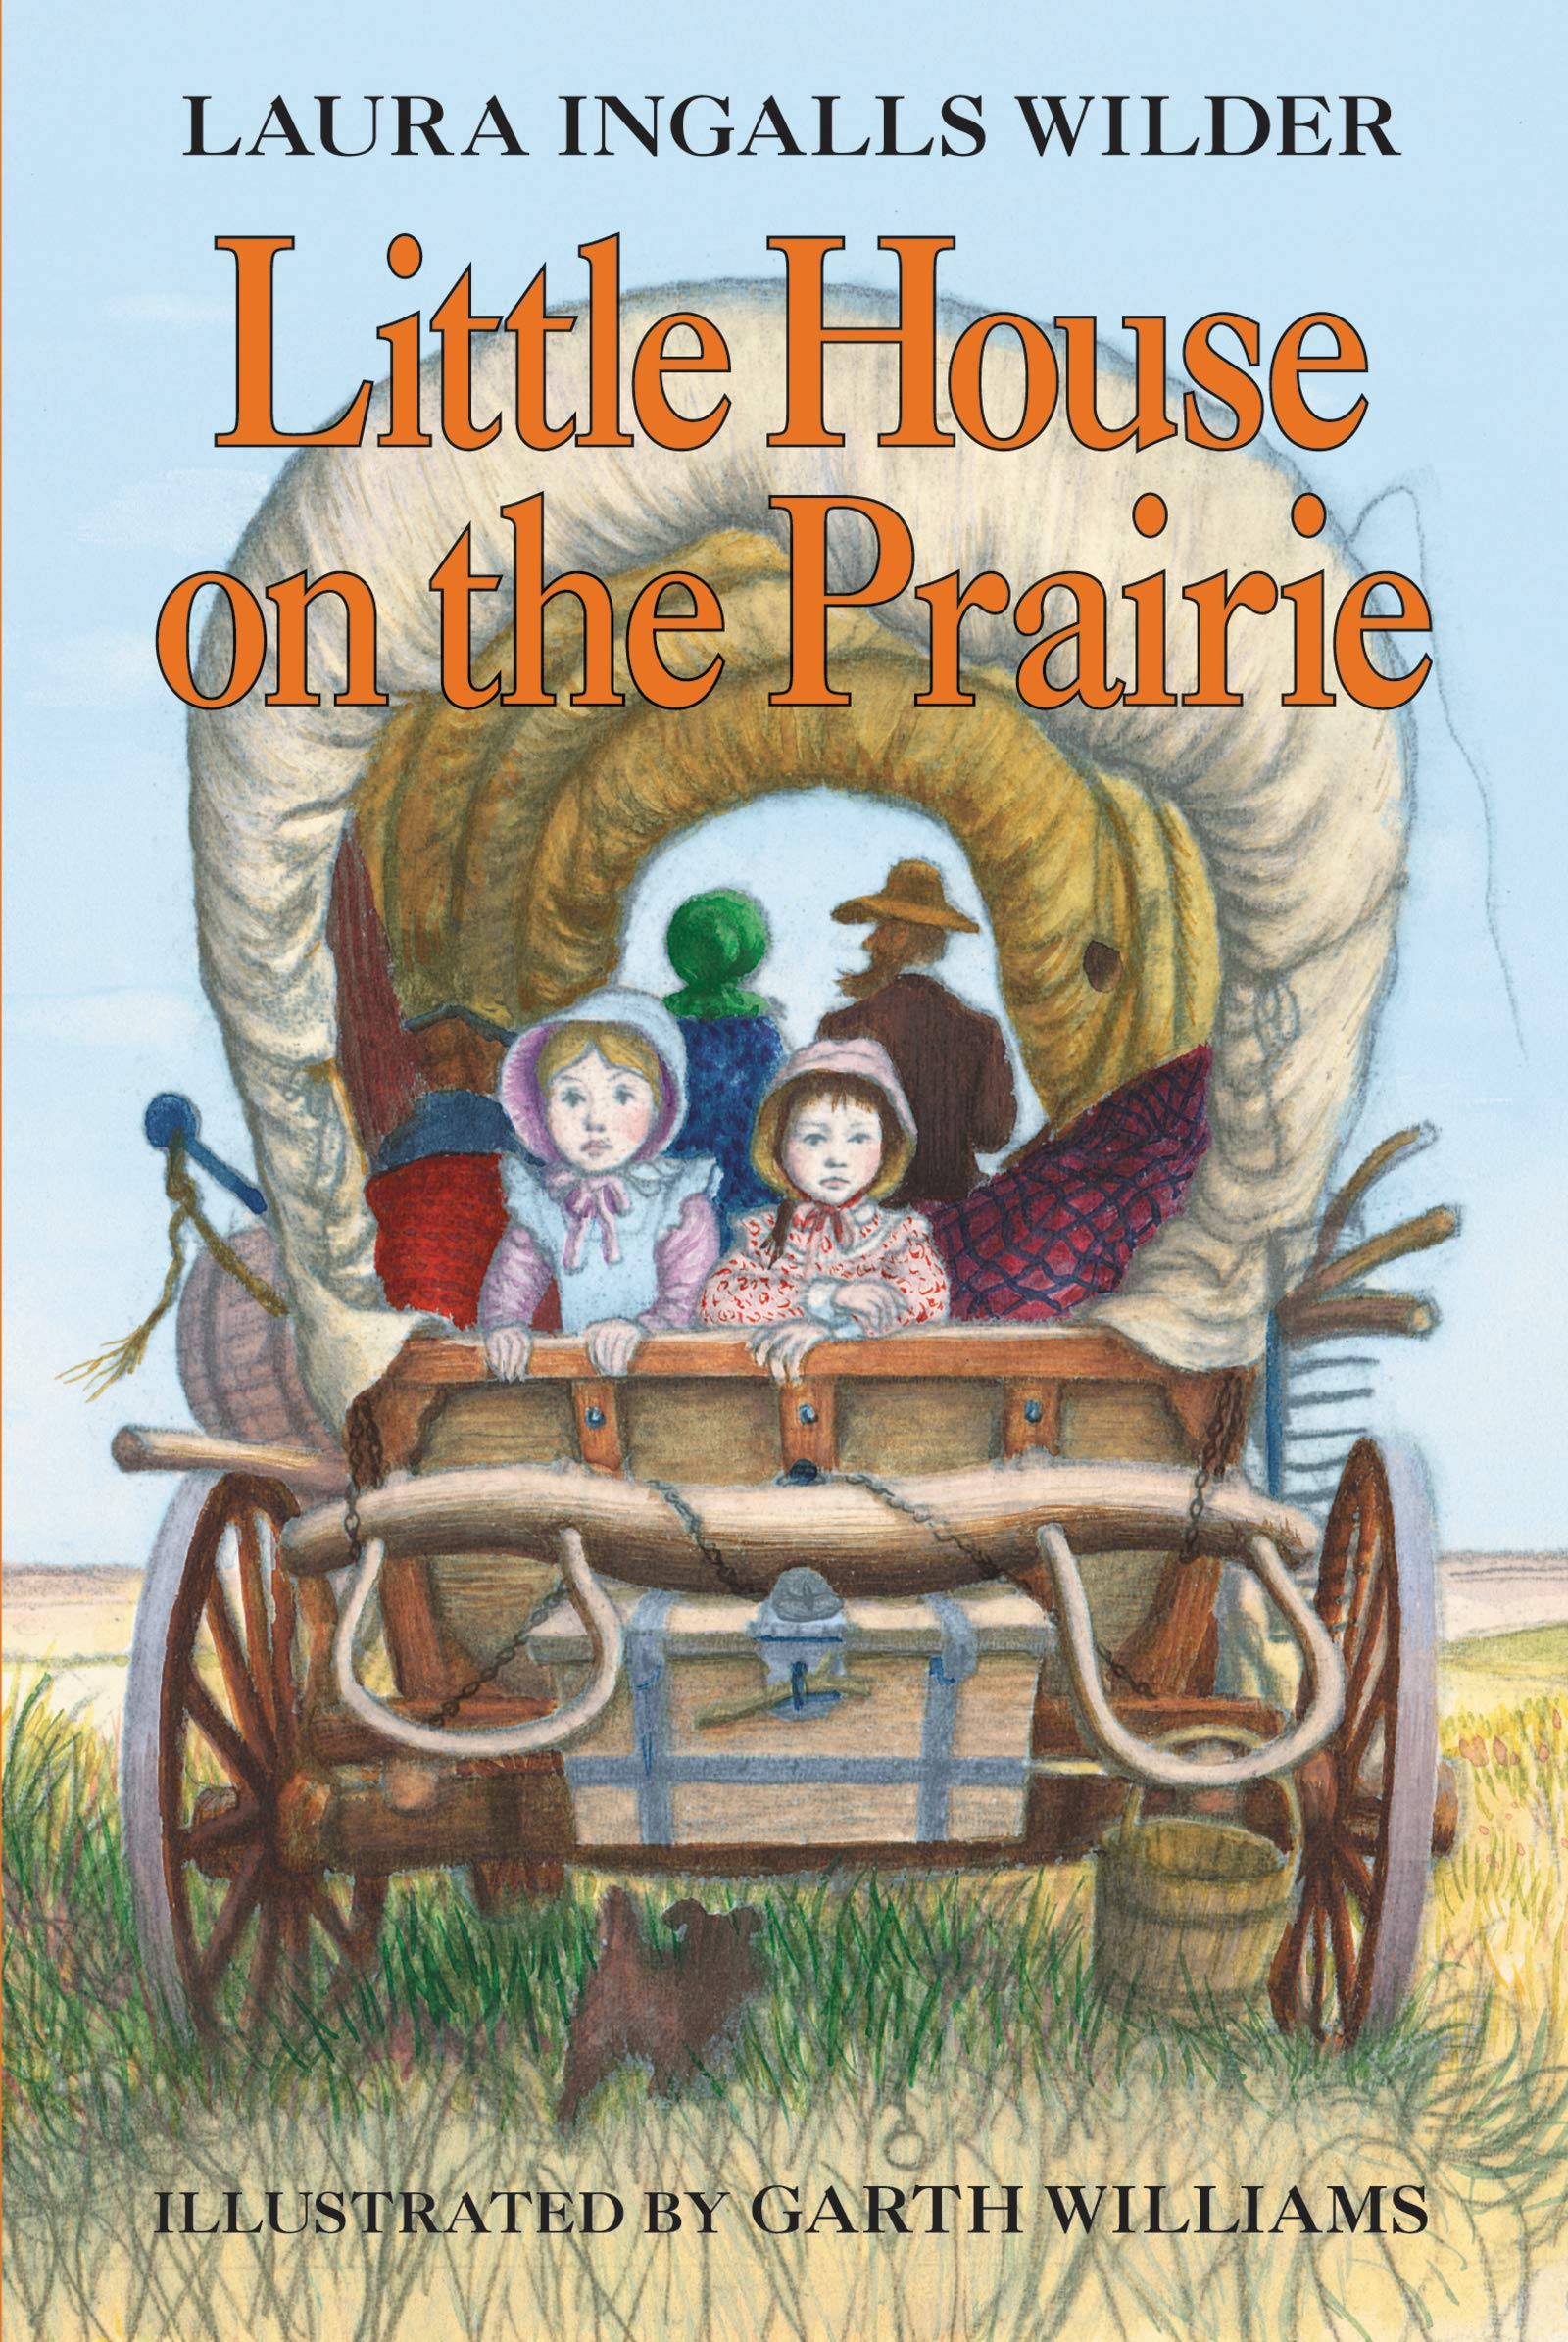 Little-house-Laura-Ingalls-Wilder